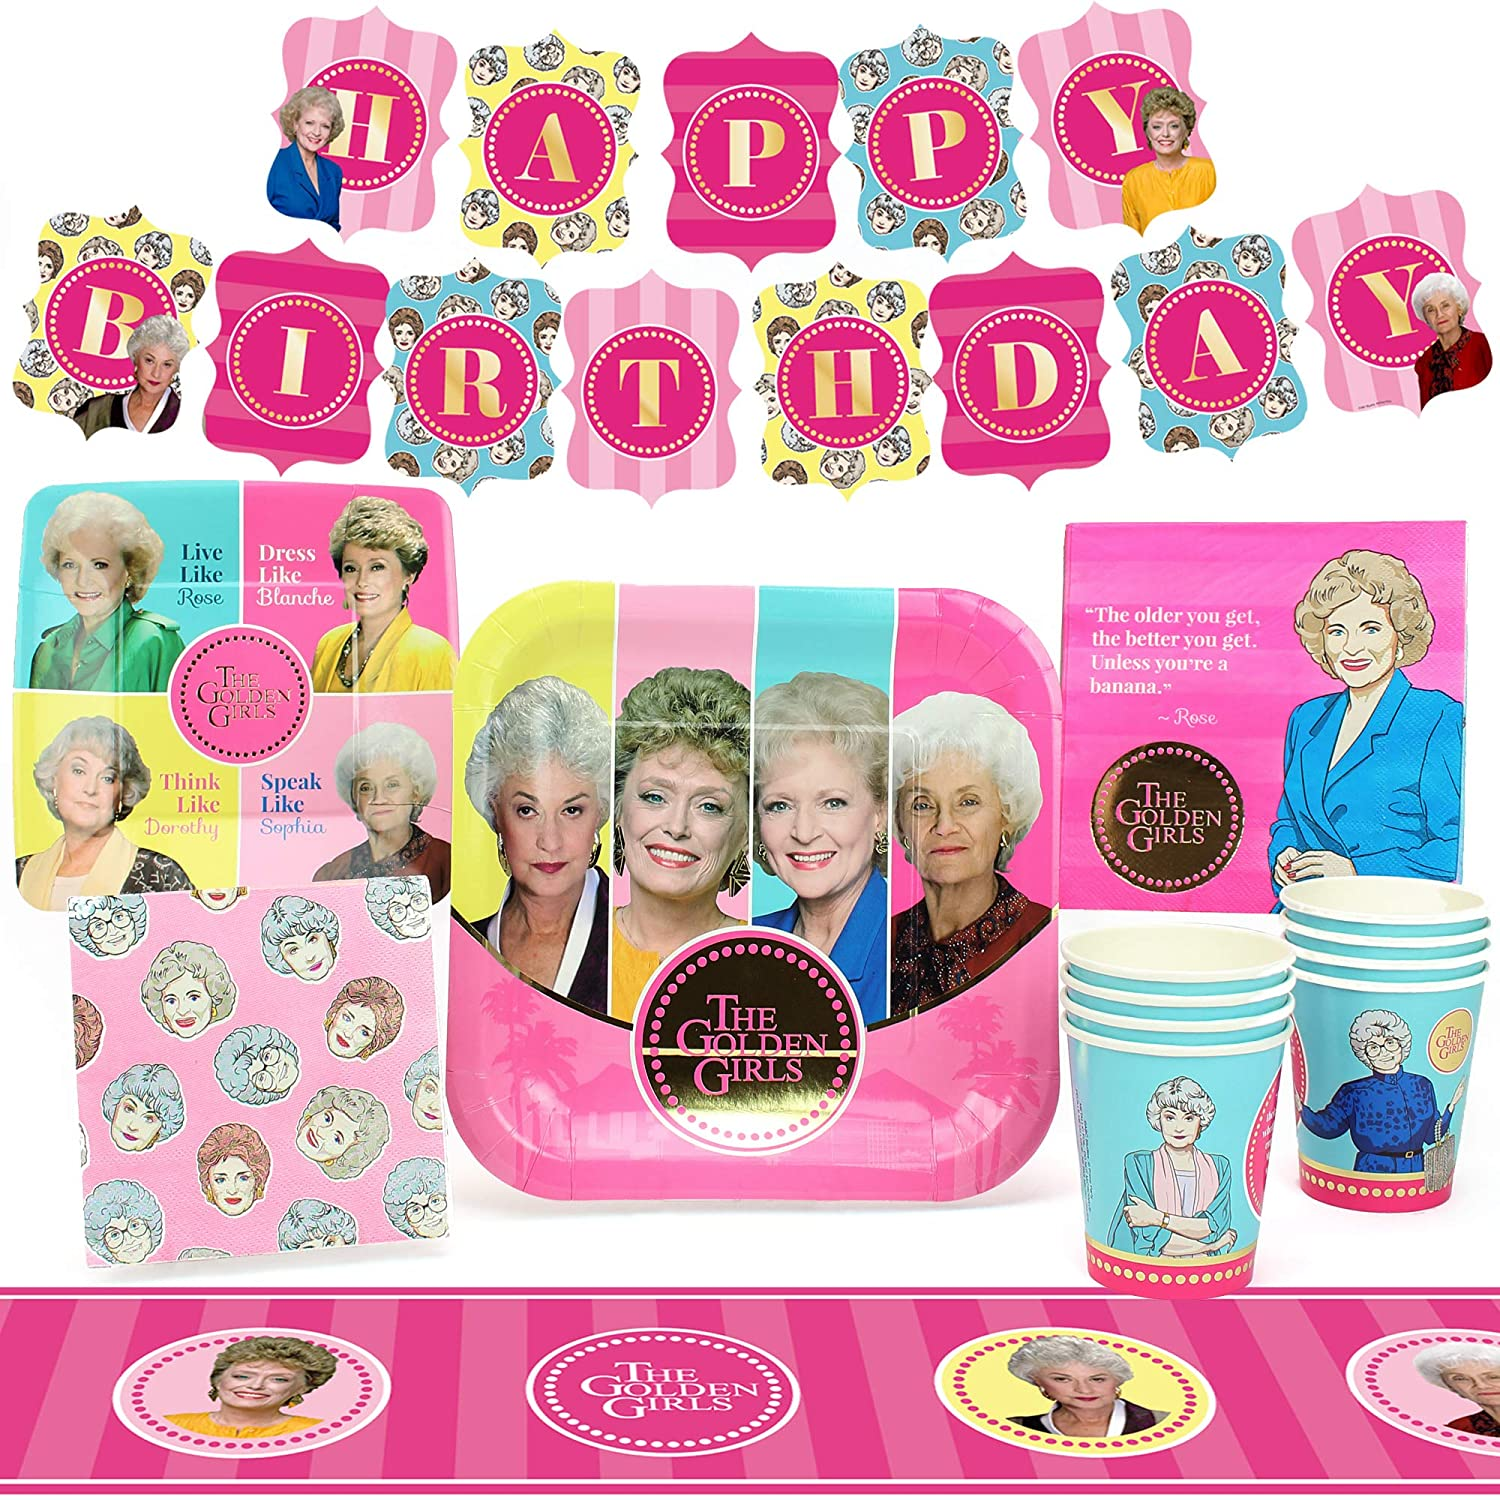 Amazon Com Golden Girls Party Supplies Standard Birthday Party Decorations With Happy Birthday Banner 58 Piece Set 40th Birthday Decorations 50th Birthday Decorations For Women Bridal Shower Decorations Toys Games